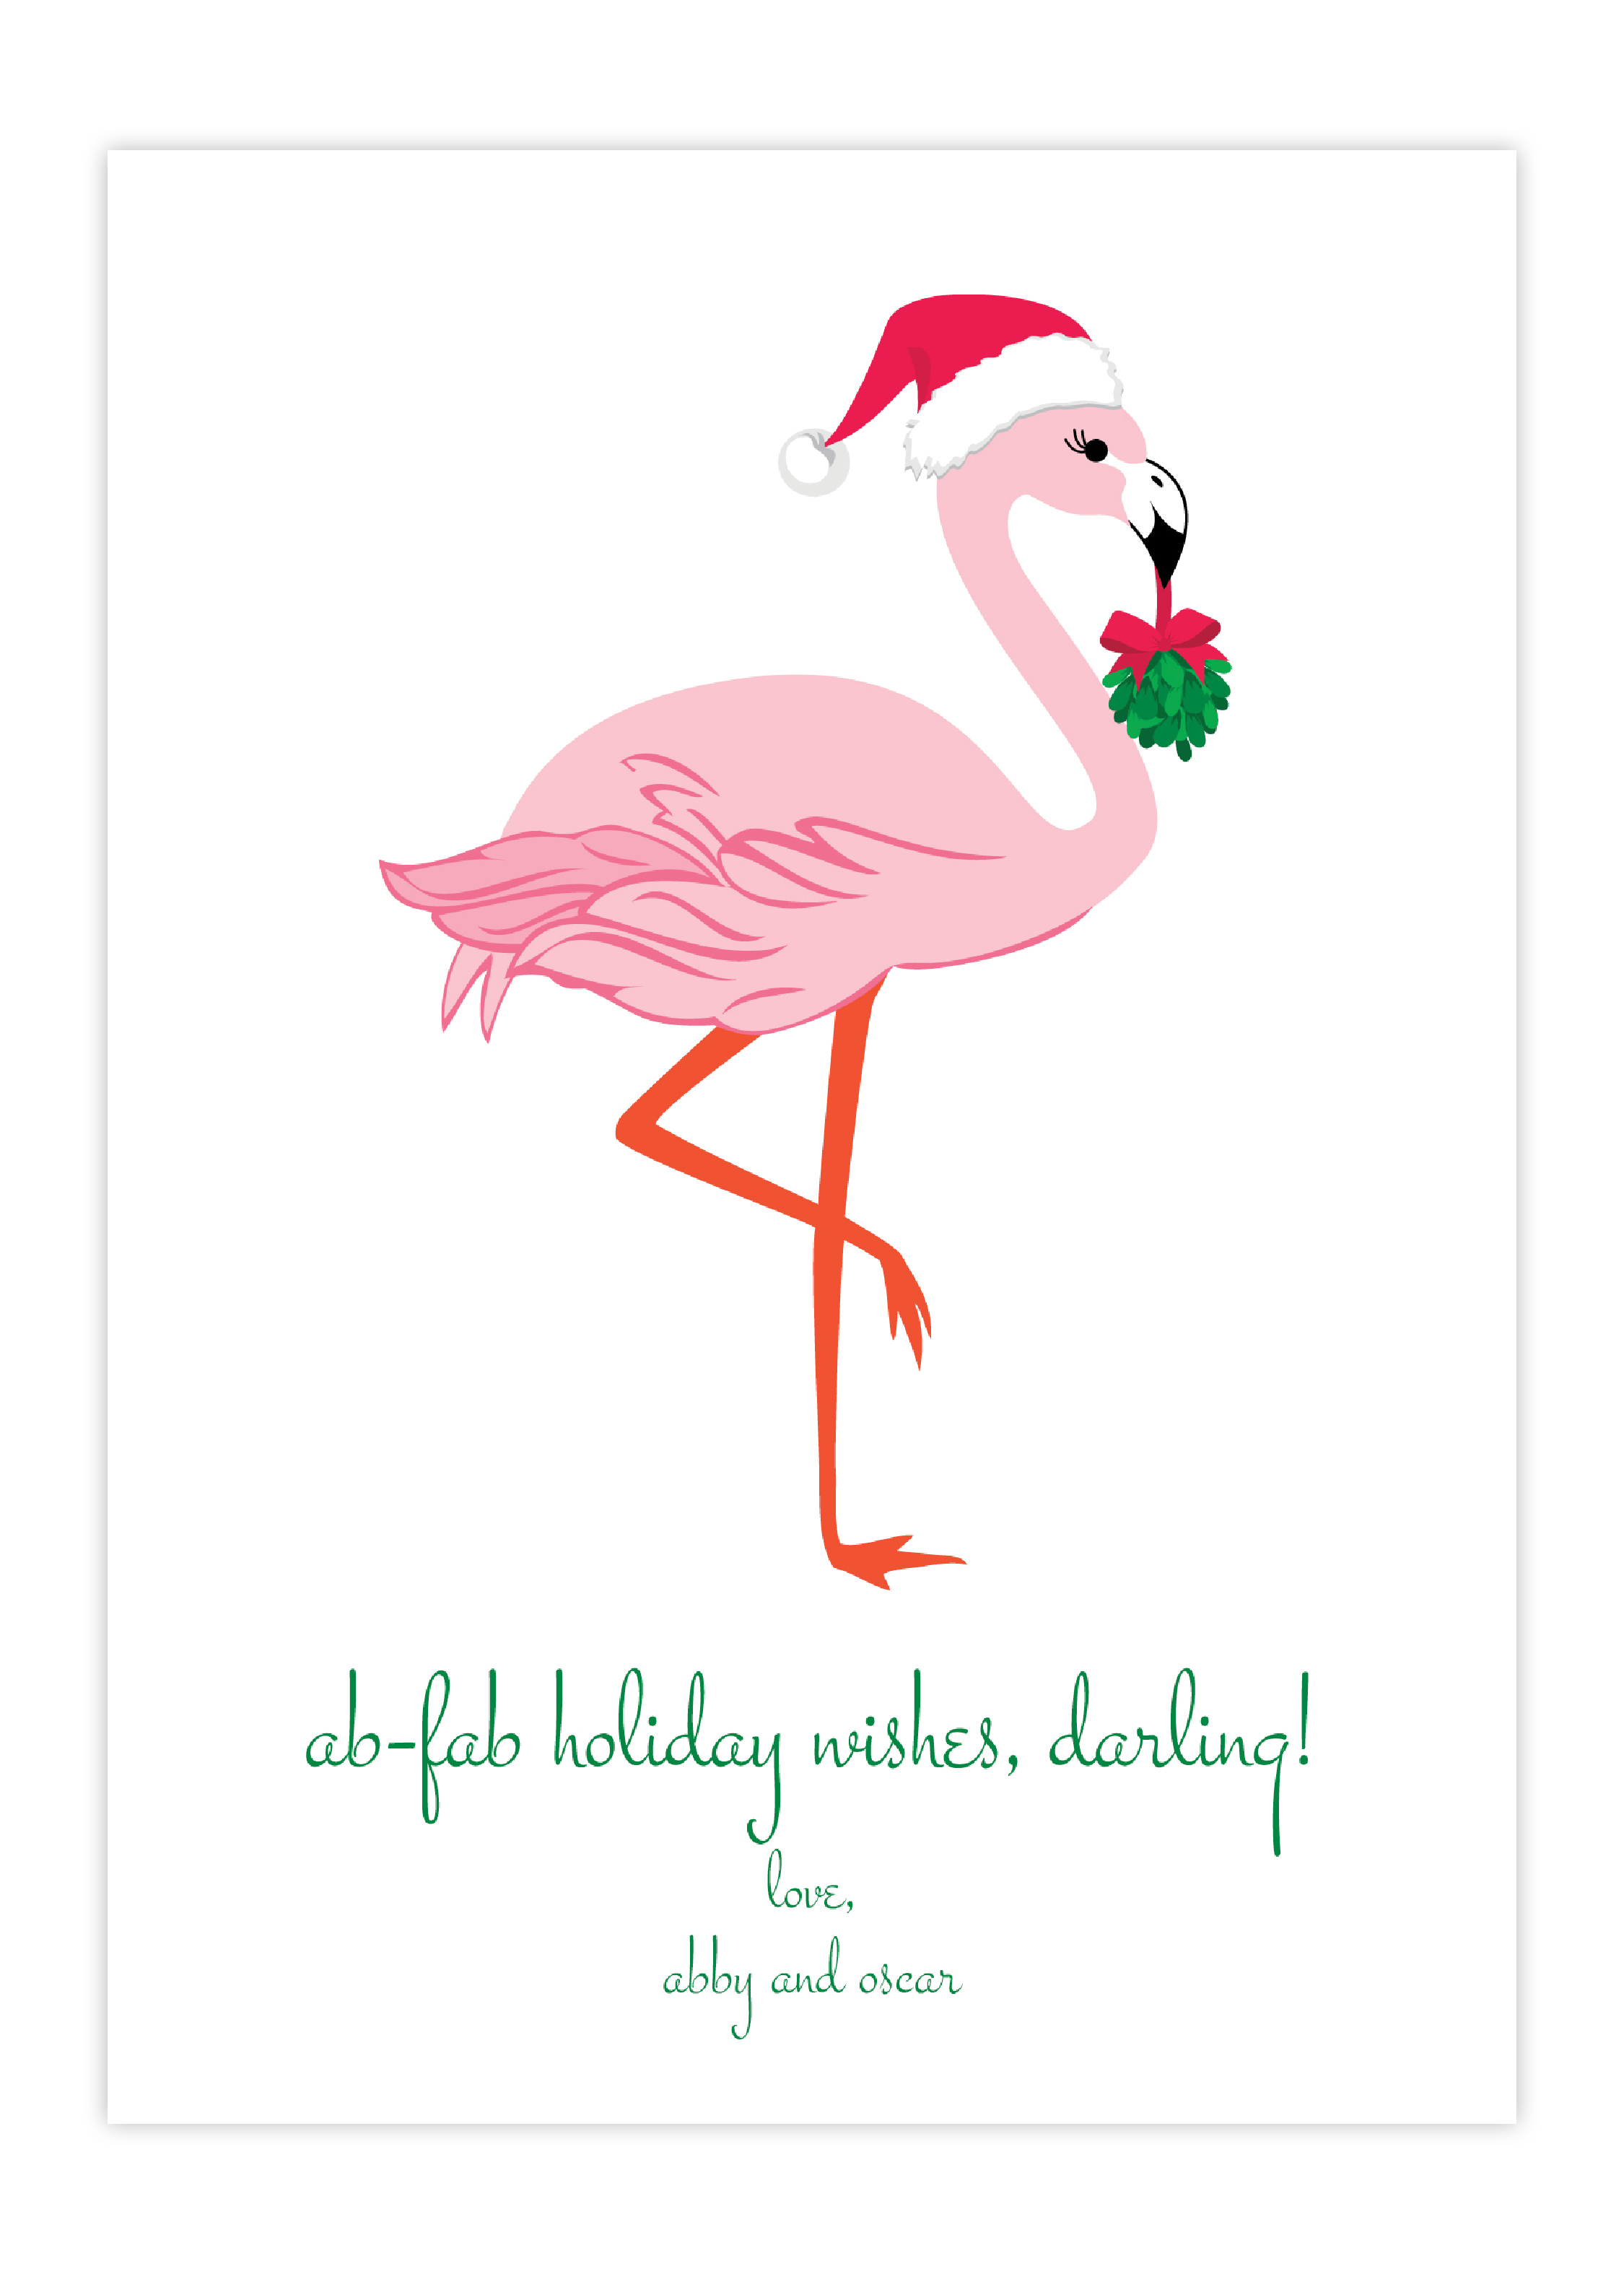 Thrifty Ab Fab Flamingo Greeting Card Holiday Collection Greeting Cards By Flair Designery Holiday Greeting Cards Wholesale Holiday Greeting Cards Lumber cards Holiday Greeting Cards